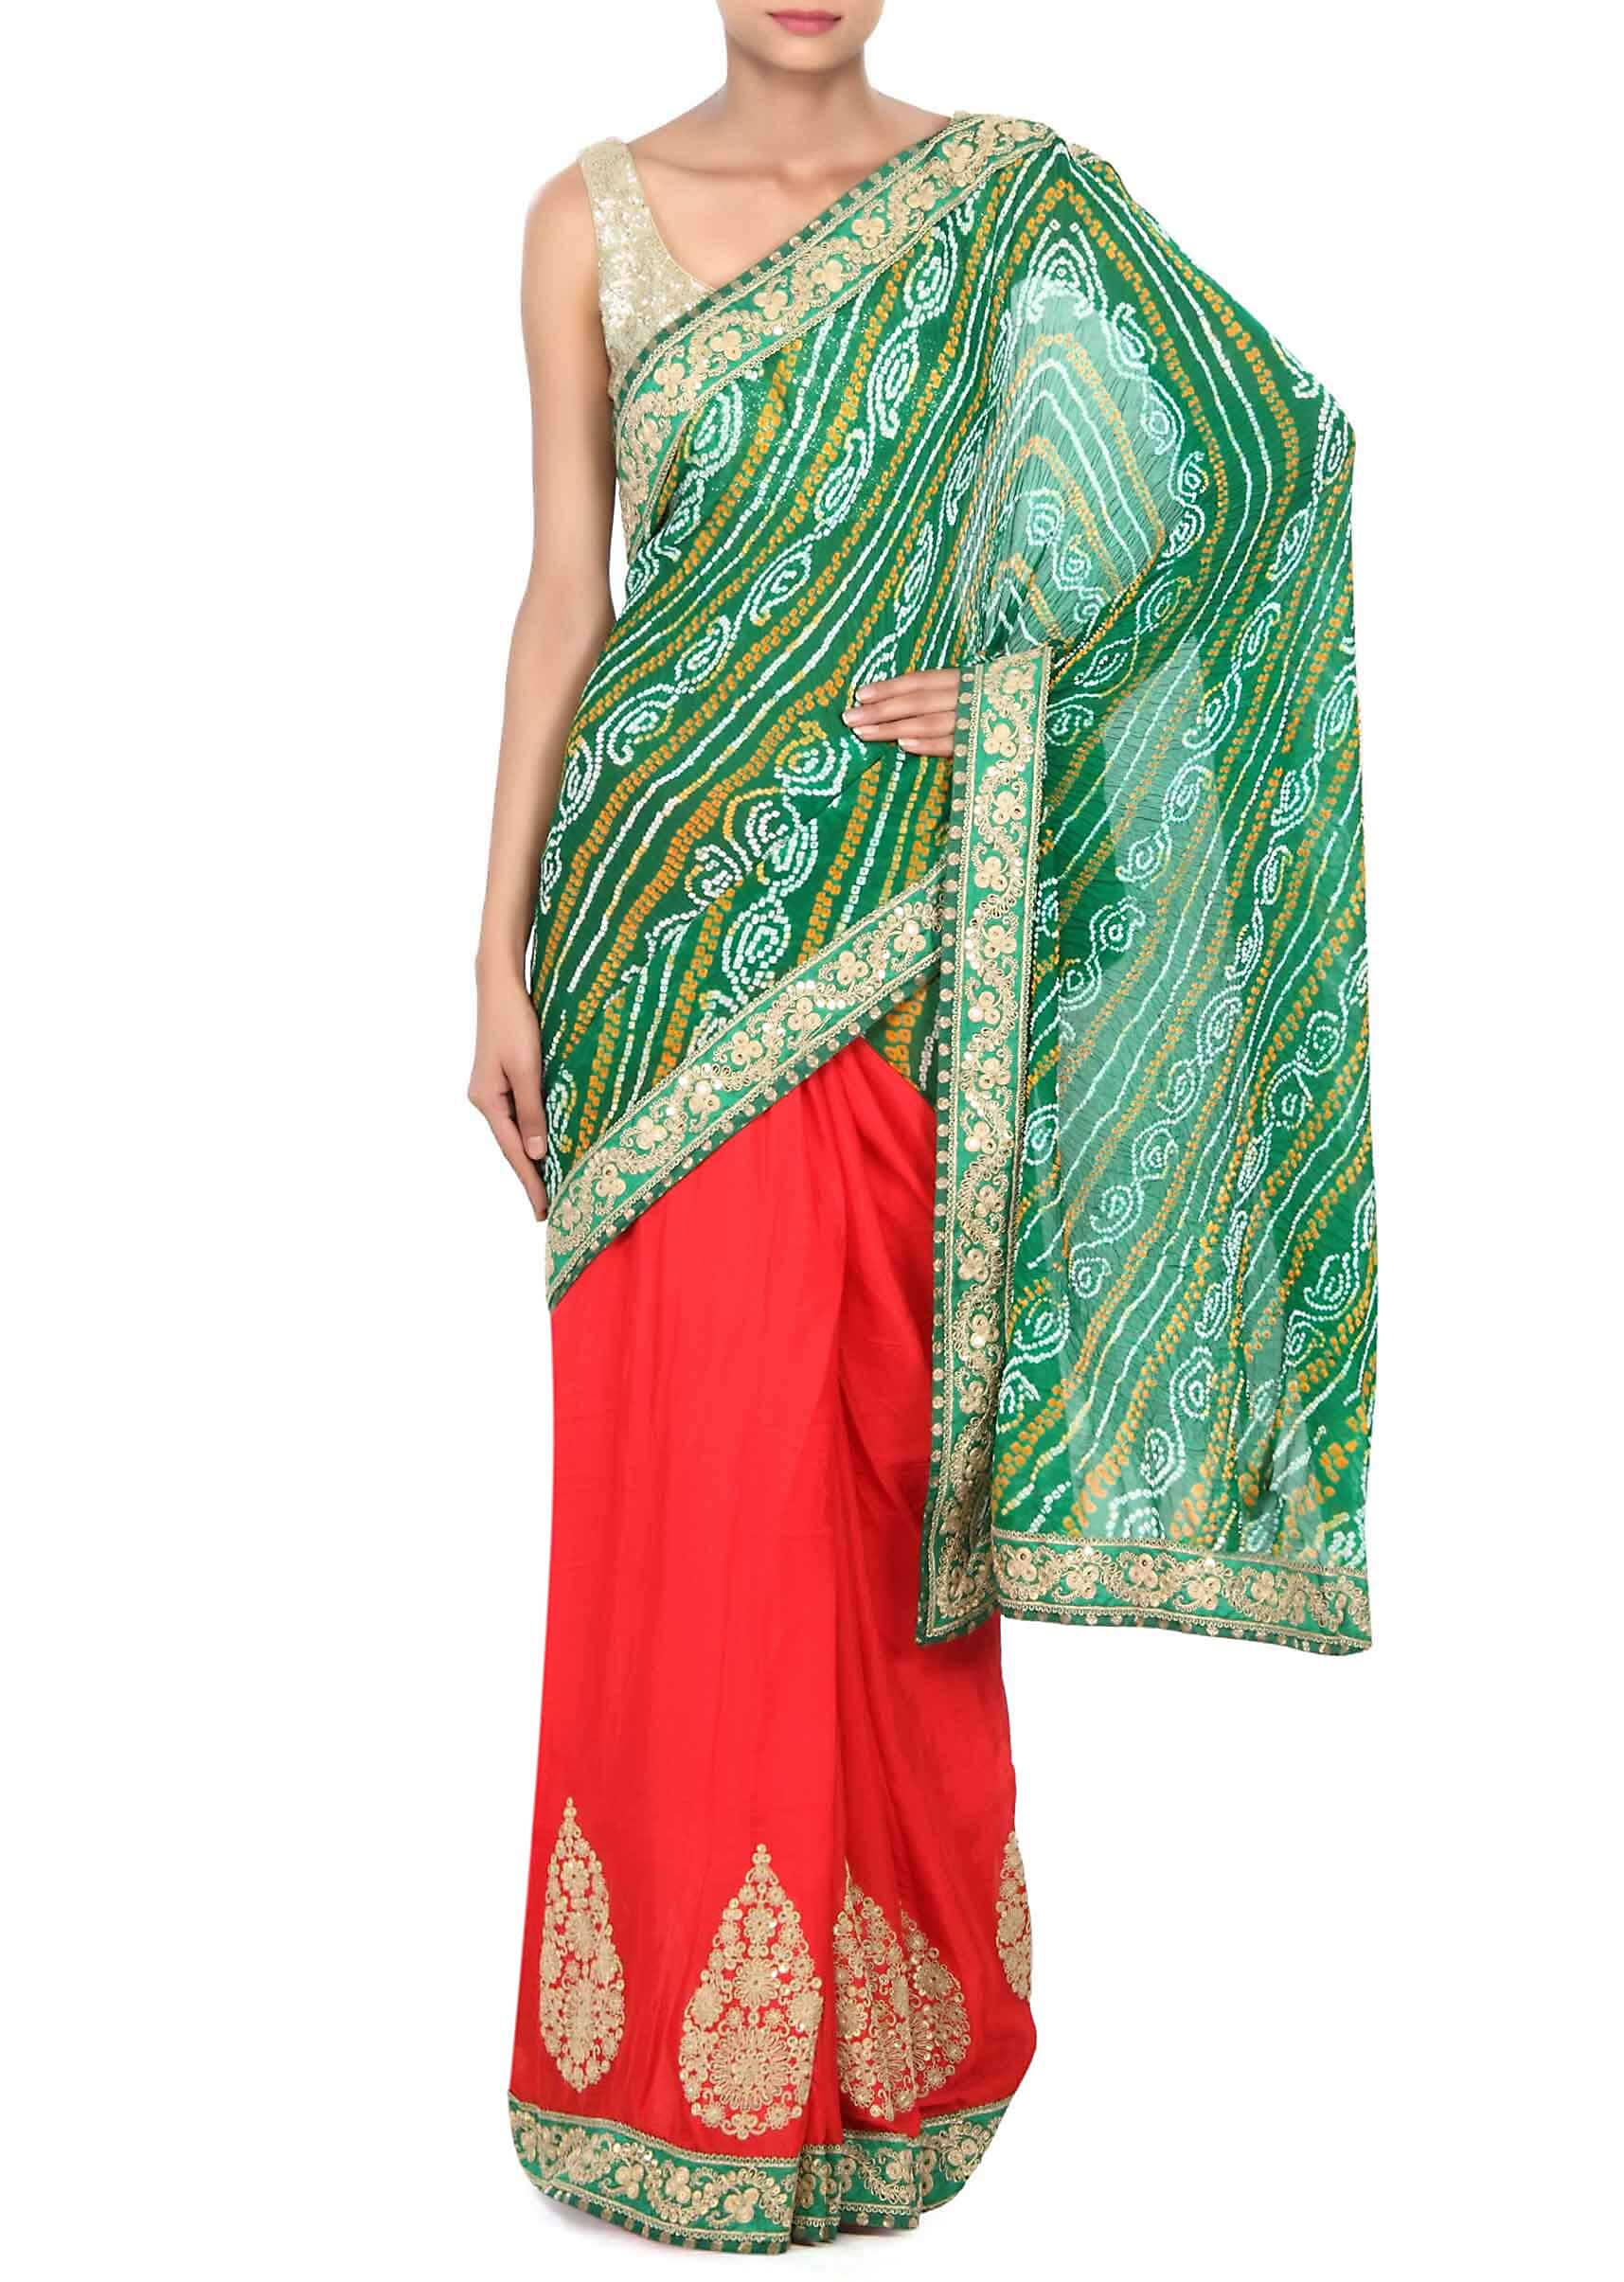 834b732d40 Half and half bandhani saree in red and green with zari and sequin  embroidery only on KalkiMore Detail